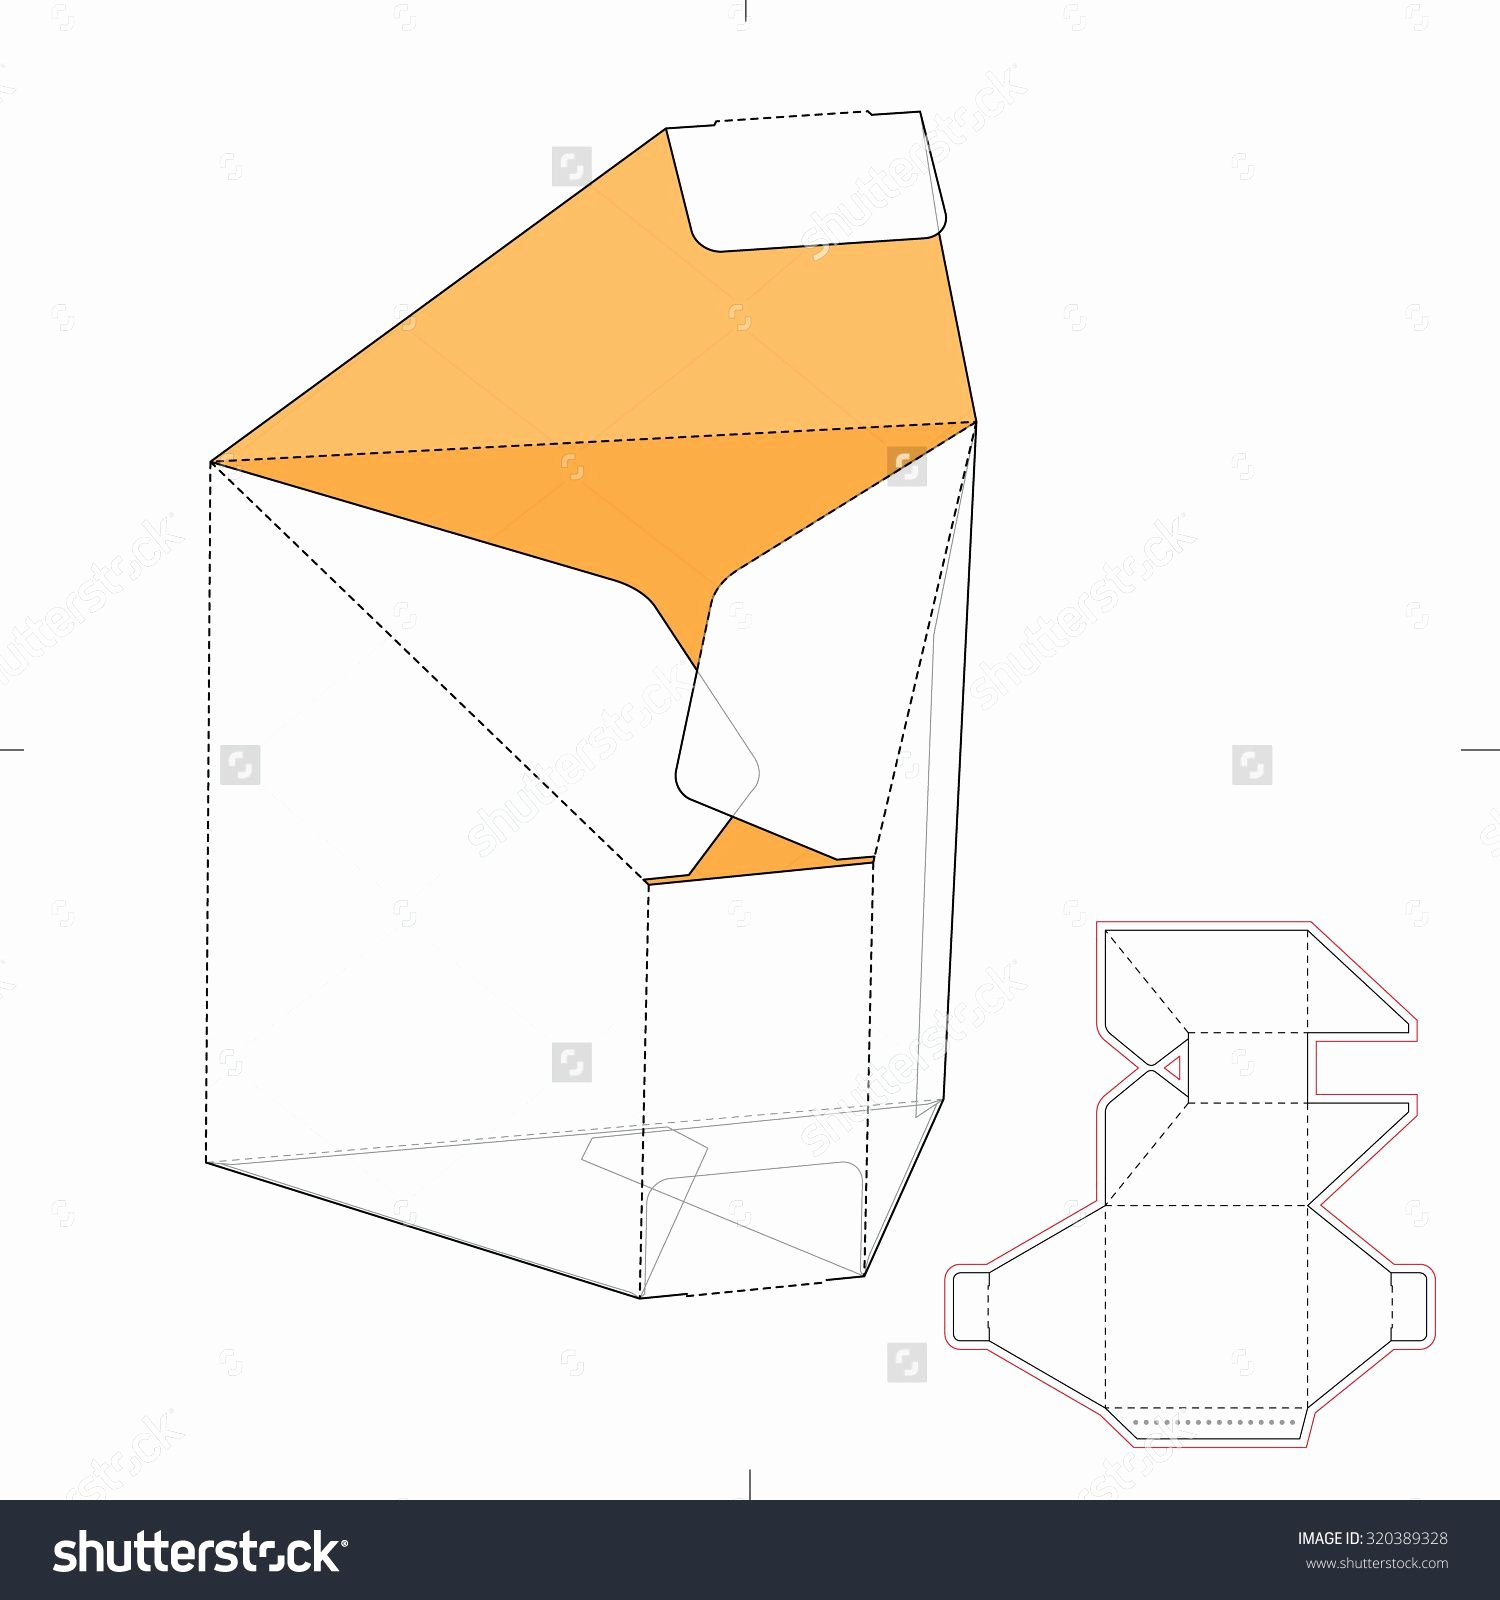 Die Cut Box Template New Tapered Prism Box with Die Cut Template Stock Vector